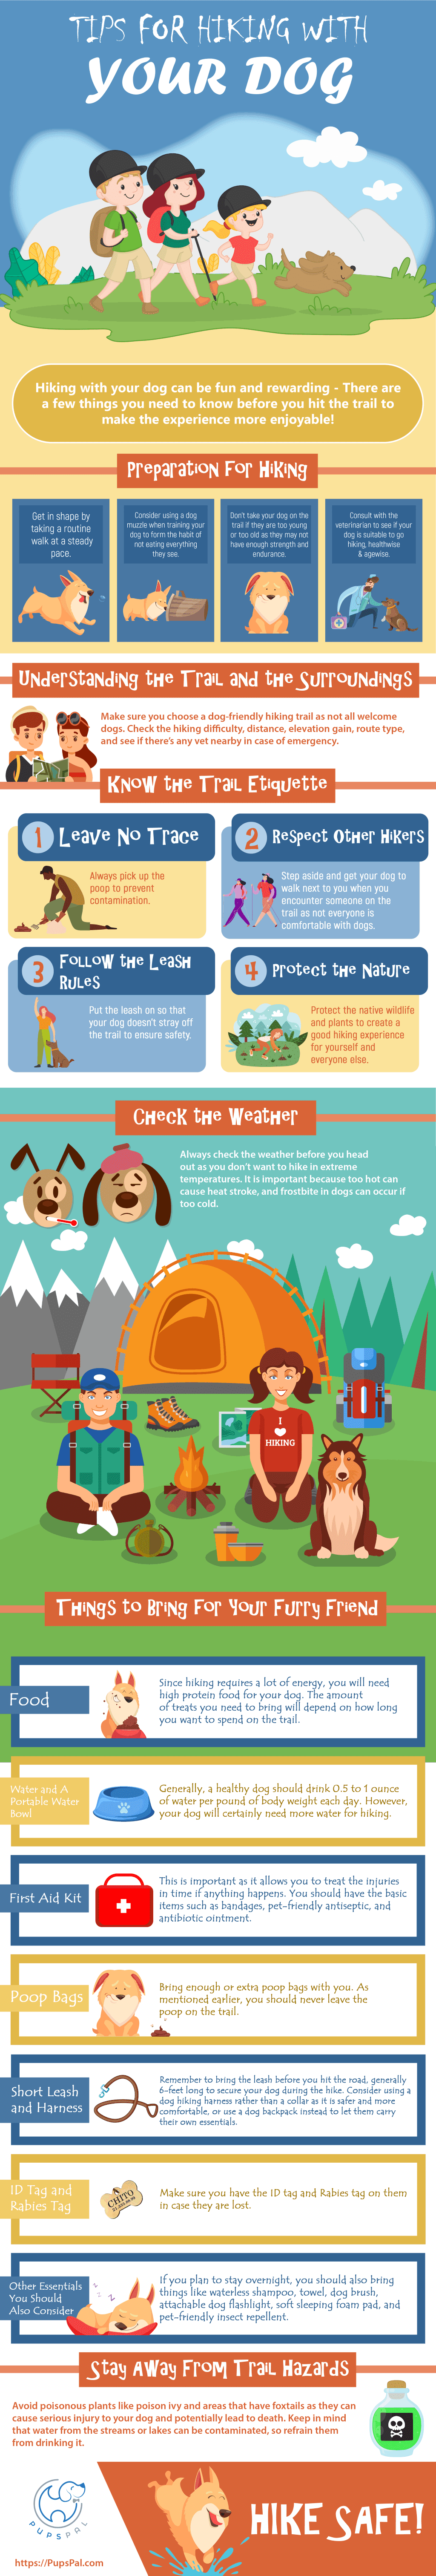 Tips for Hiking with Dog #infographic